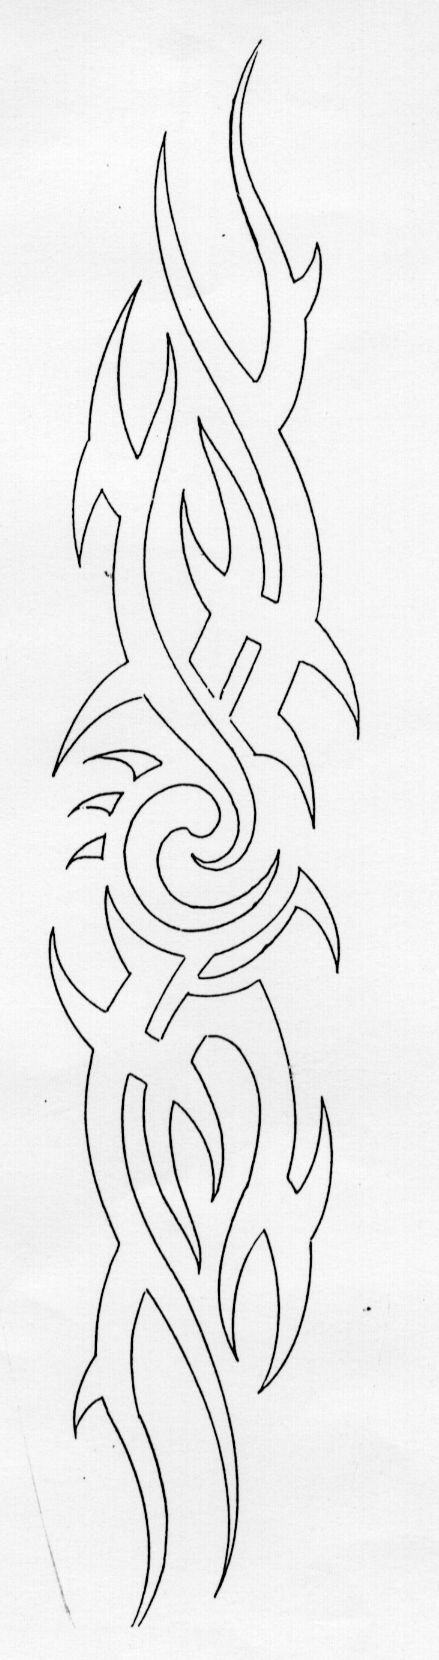 Arm Band Tattoos 76ar80.jpg  follow link to print full size image http://tattoo-advisor.com/tattoo-images/Arm-Band-Tattoos/bigimage.php?images/Arm_Band_Tattoos_76ar80.jpg